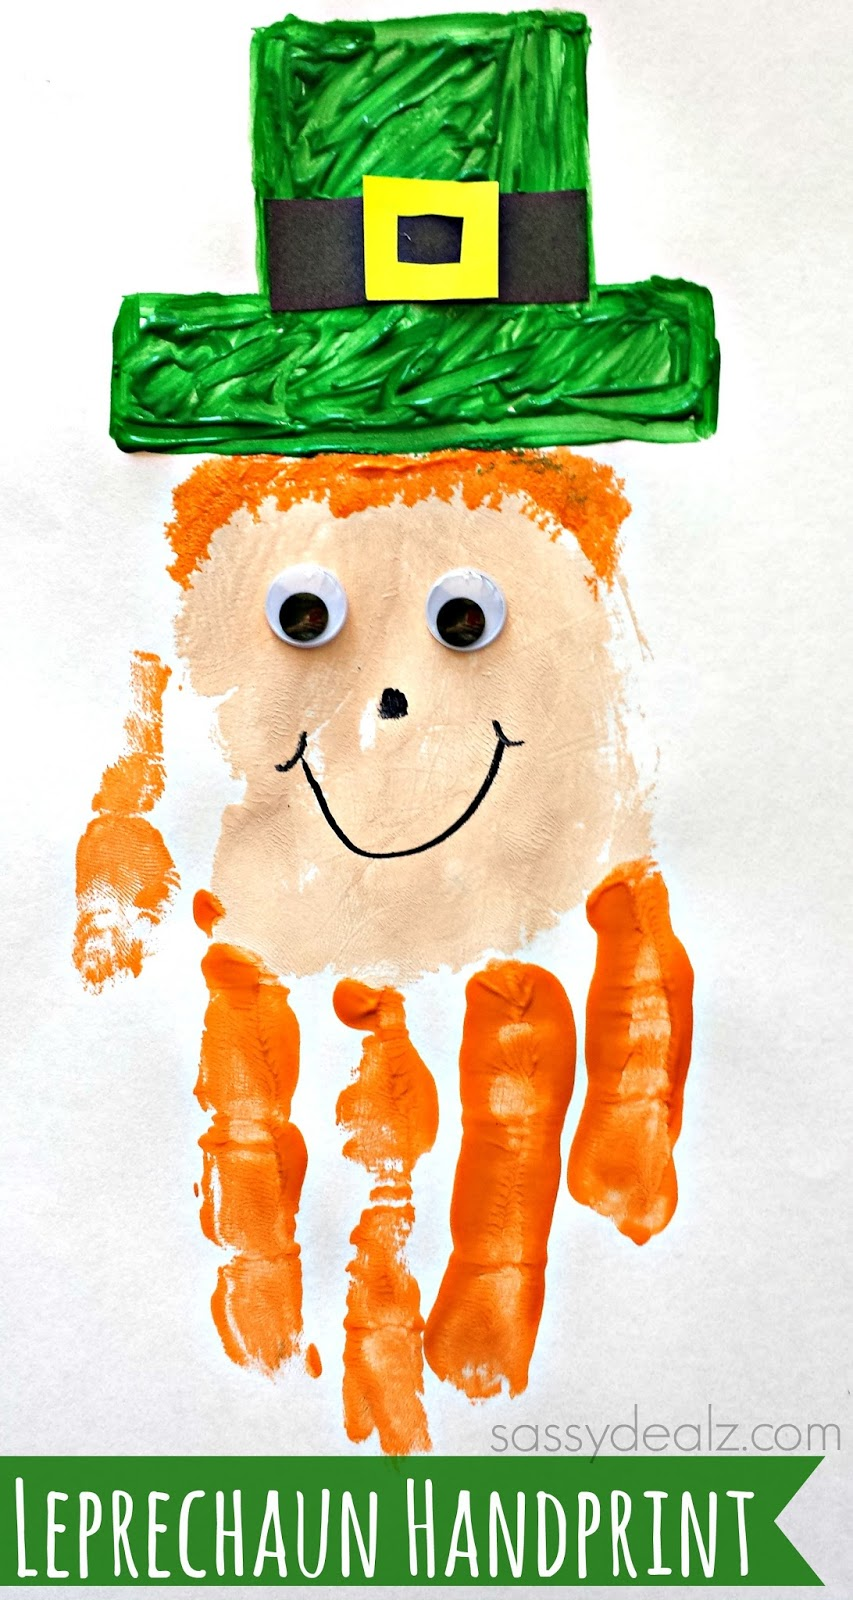 http://www.sassydealz.com/2014/01/leprechaun-handprint-craft-kids-st-patricks-day-idea.html